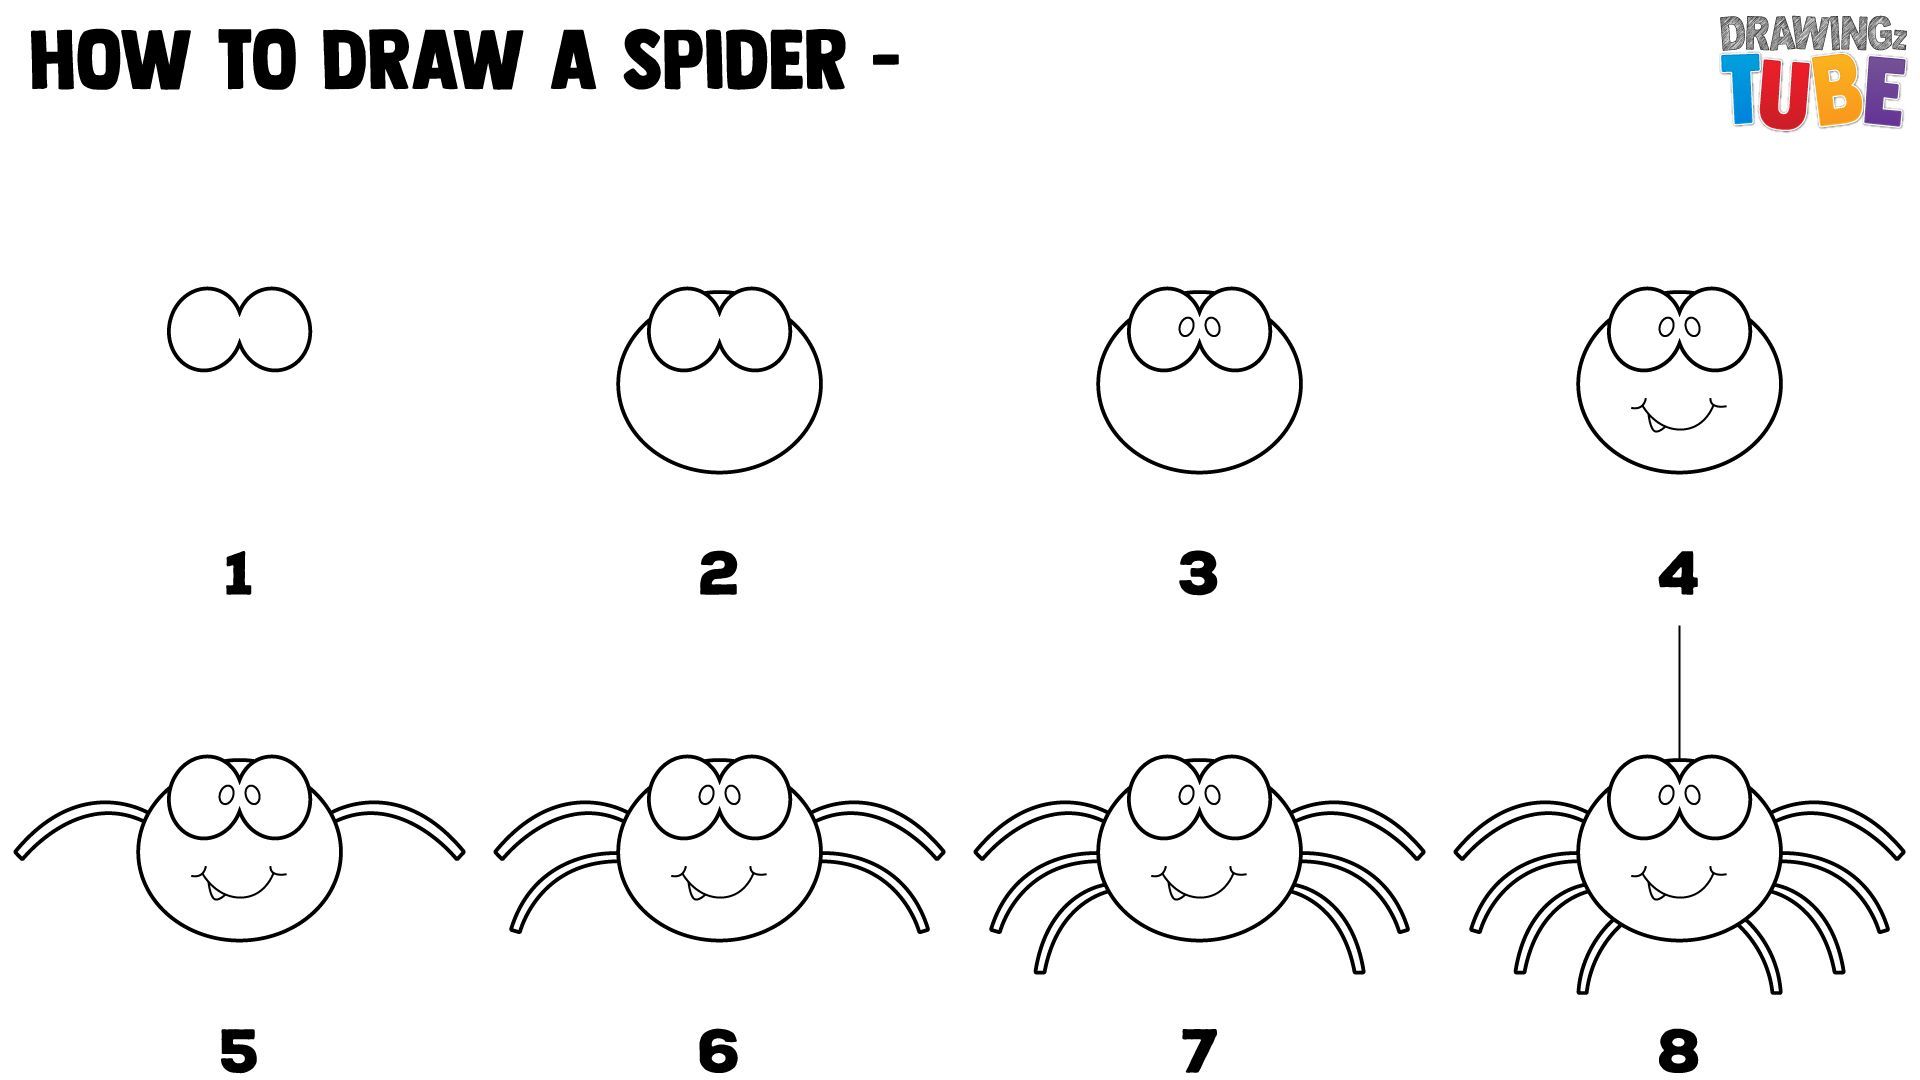 Pin By Kartika Indriani On Karya S Projects In 2020 Spider Drawing Kids Doodles Easy Drawings For Kids